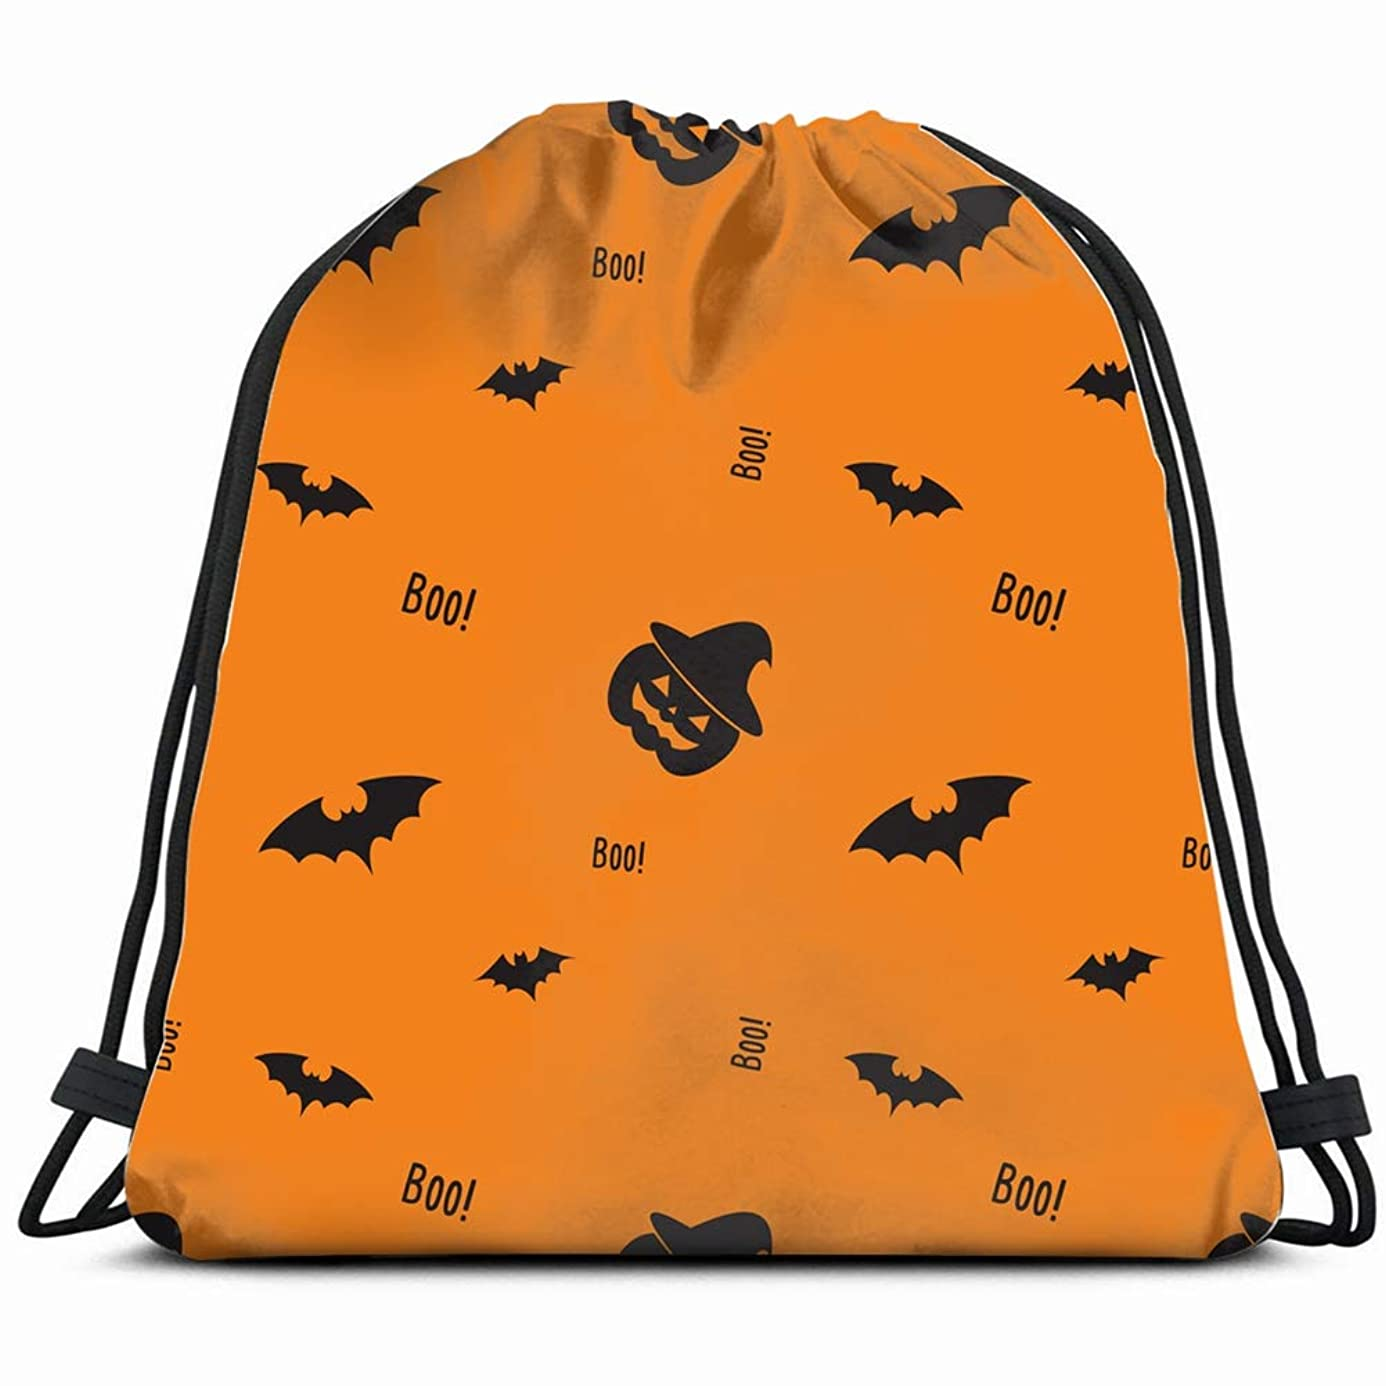 happy halloween pumpkin bat witch holidays Drawstring Backpack Gym Sack Lightweight Bag Water Resistant Gym Backpack for Women&Men for Sports,Travelling,Hiking,Camping,Shopping Yoga